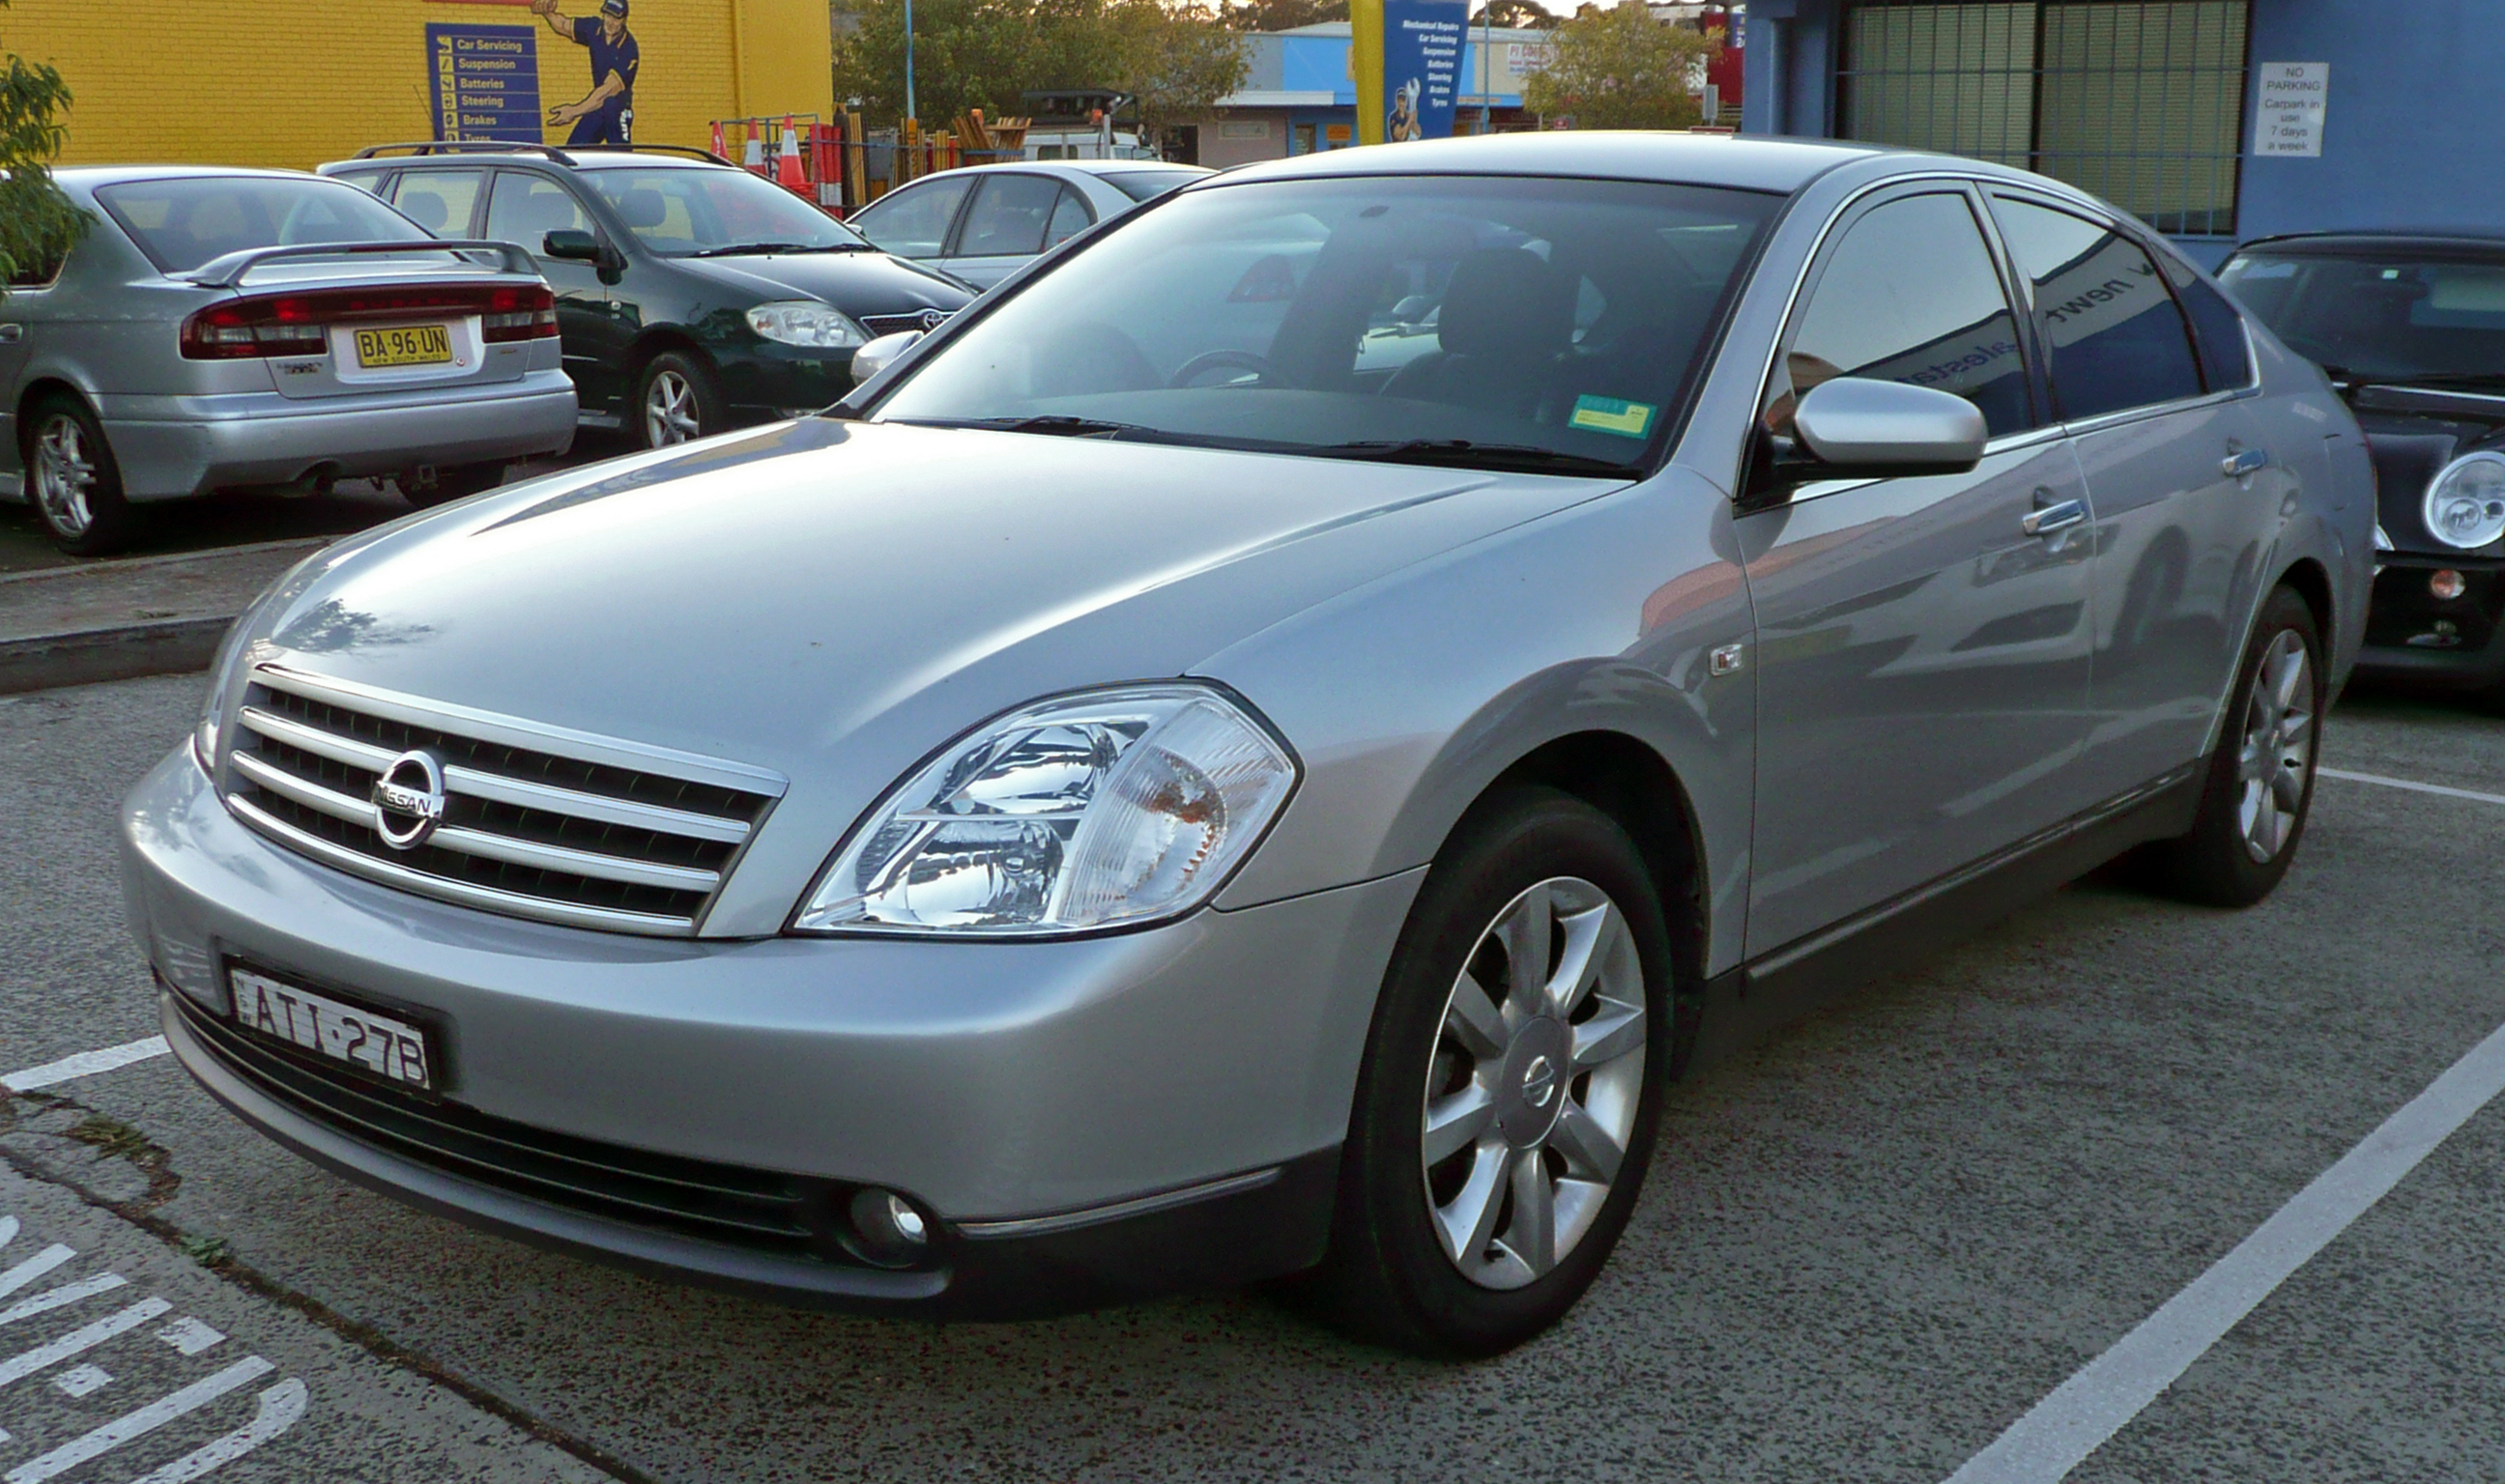 New Nissan Maxima >> File:2003-2006 Nissan Maxima (J31) Ti sedan (2010-05-10).jpg - Wikimedia Commons